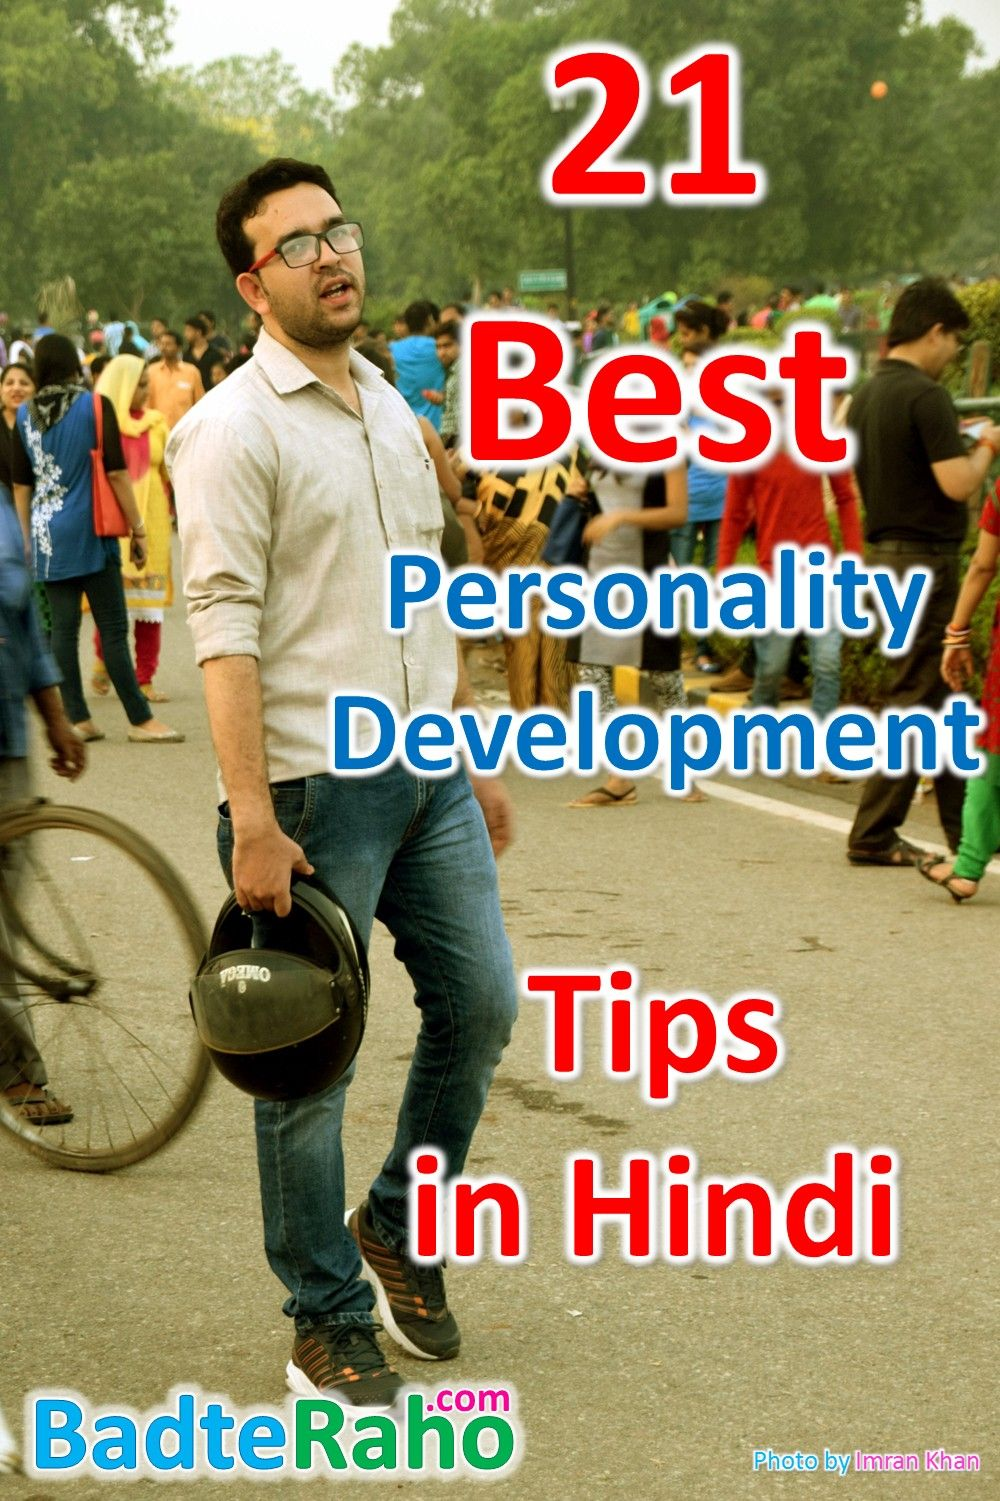 Personality-Development-Tips-Pinterest